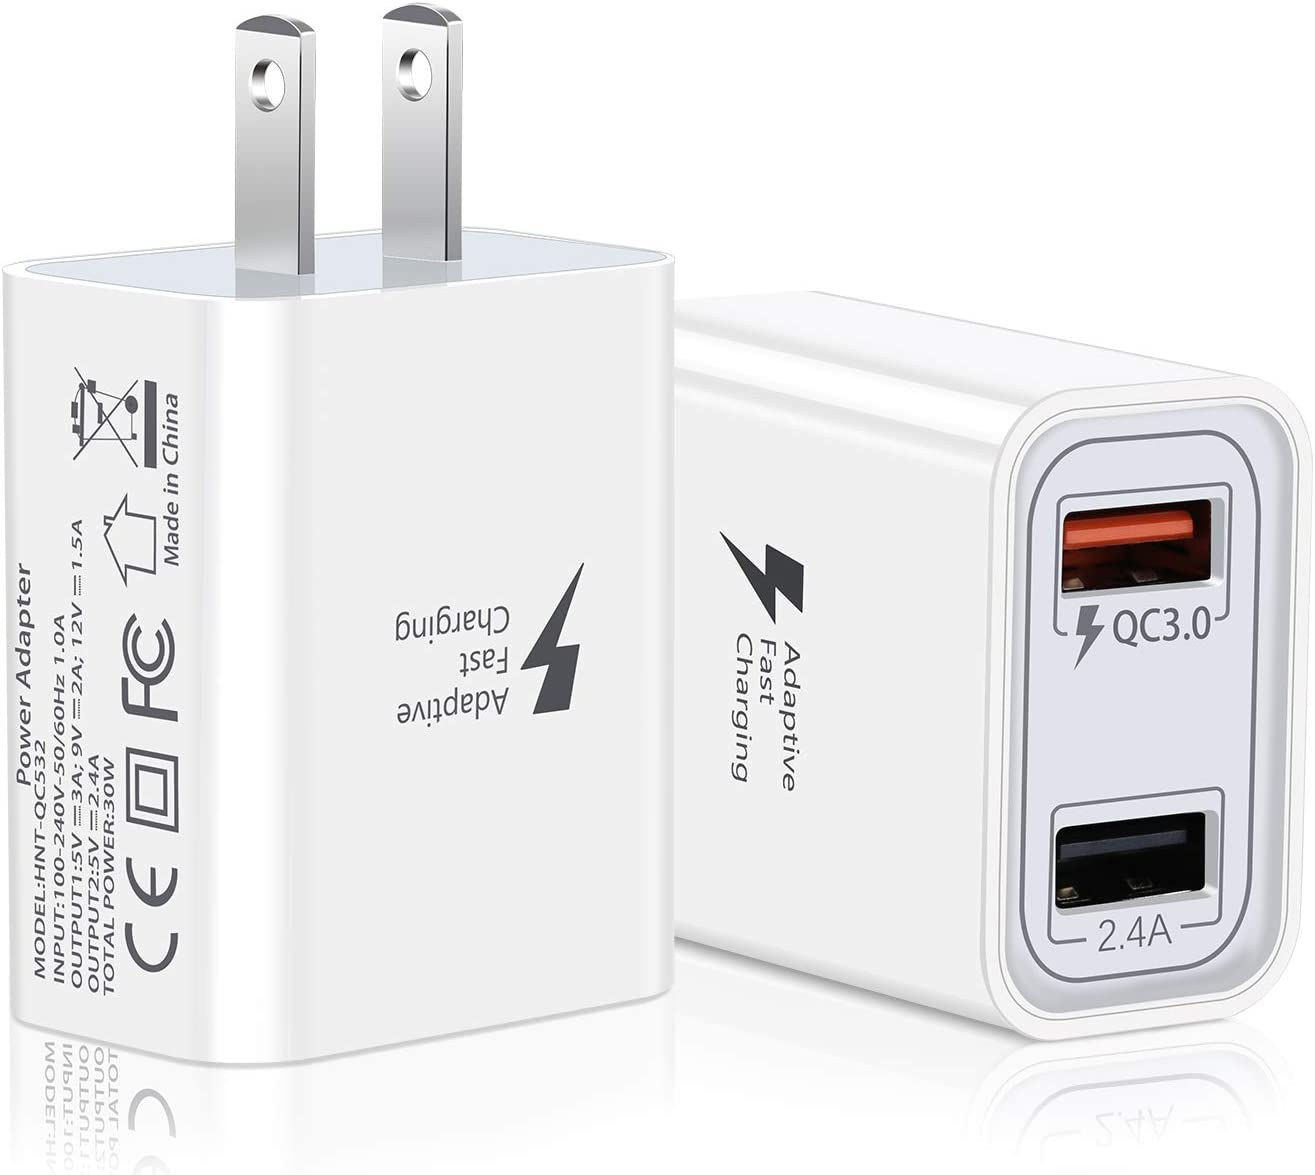 LG QC3.0+2.4A Quick Charge 3.0 USB Wall Charger Tablet-Black,White Adapter Fast Charging Adaptive Plug Compatible with iPhone Xs//XS Max//XR//X//8//8 Plus//7//6S//6S Plus,Samsung Galaxy S10 S9 S8 Plus S7 S6 Edge Note 8 9 10 Pofesun 2-Pack 30W 2 Ports HTC